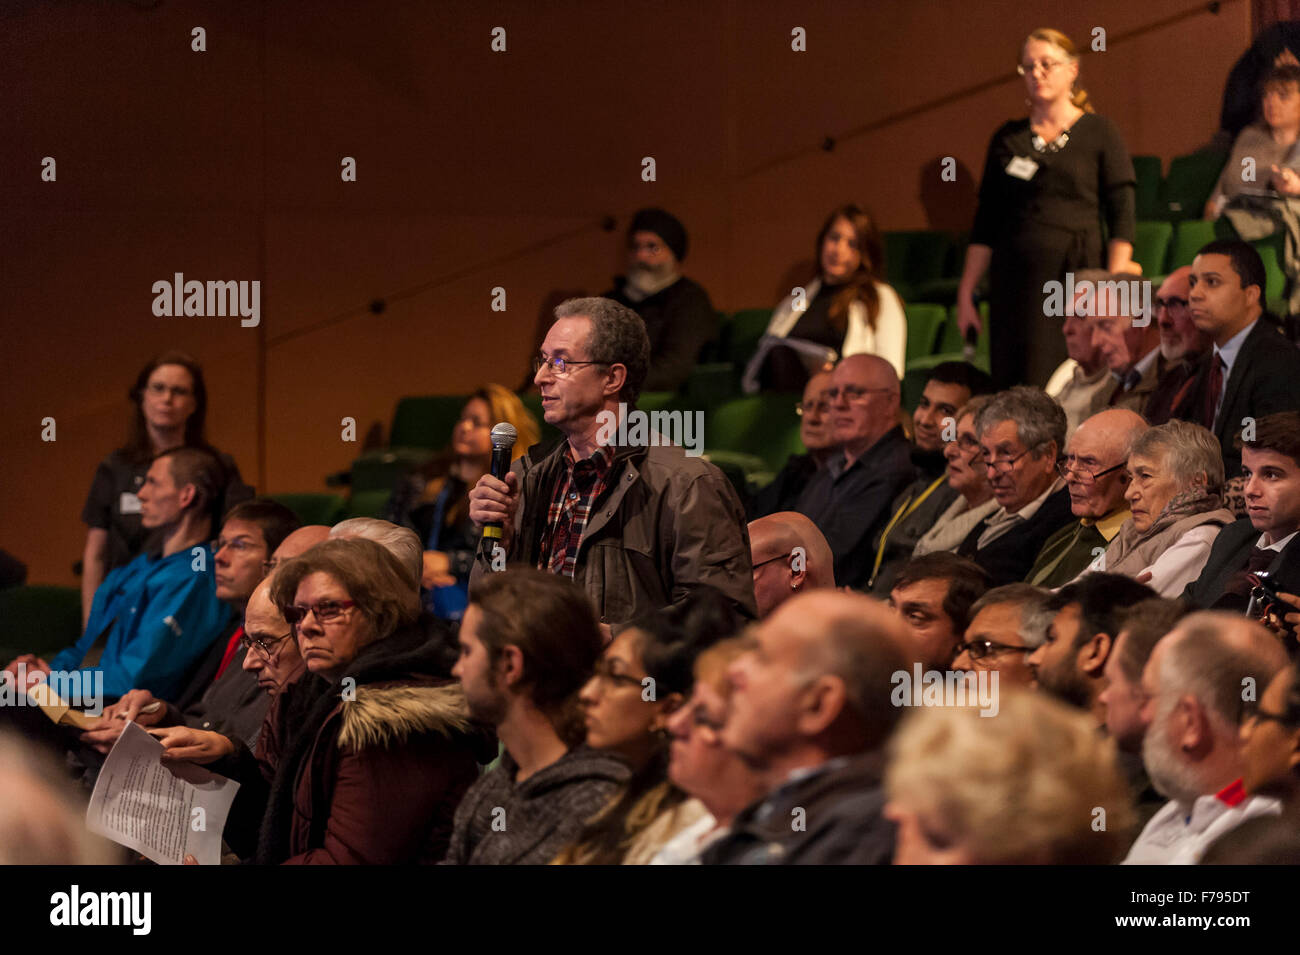 London, UK.  26 November 2015.  A member of the public asks a question during People's Question Time, at the - Stock Image